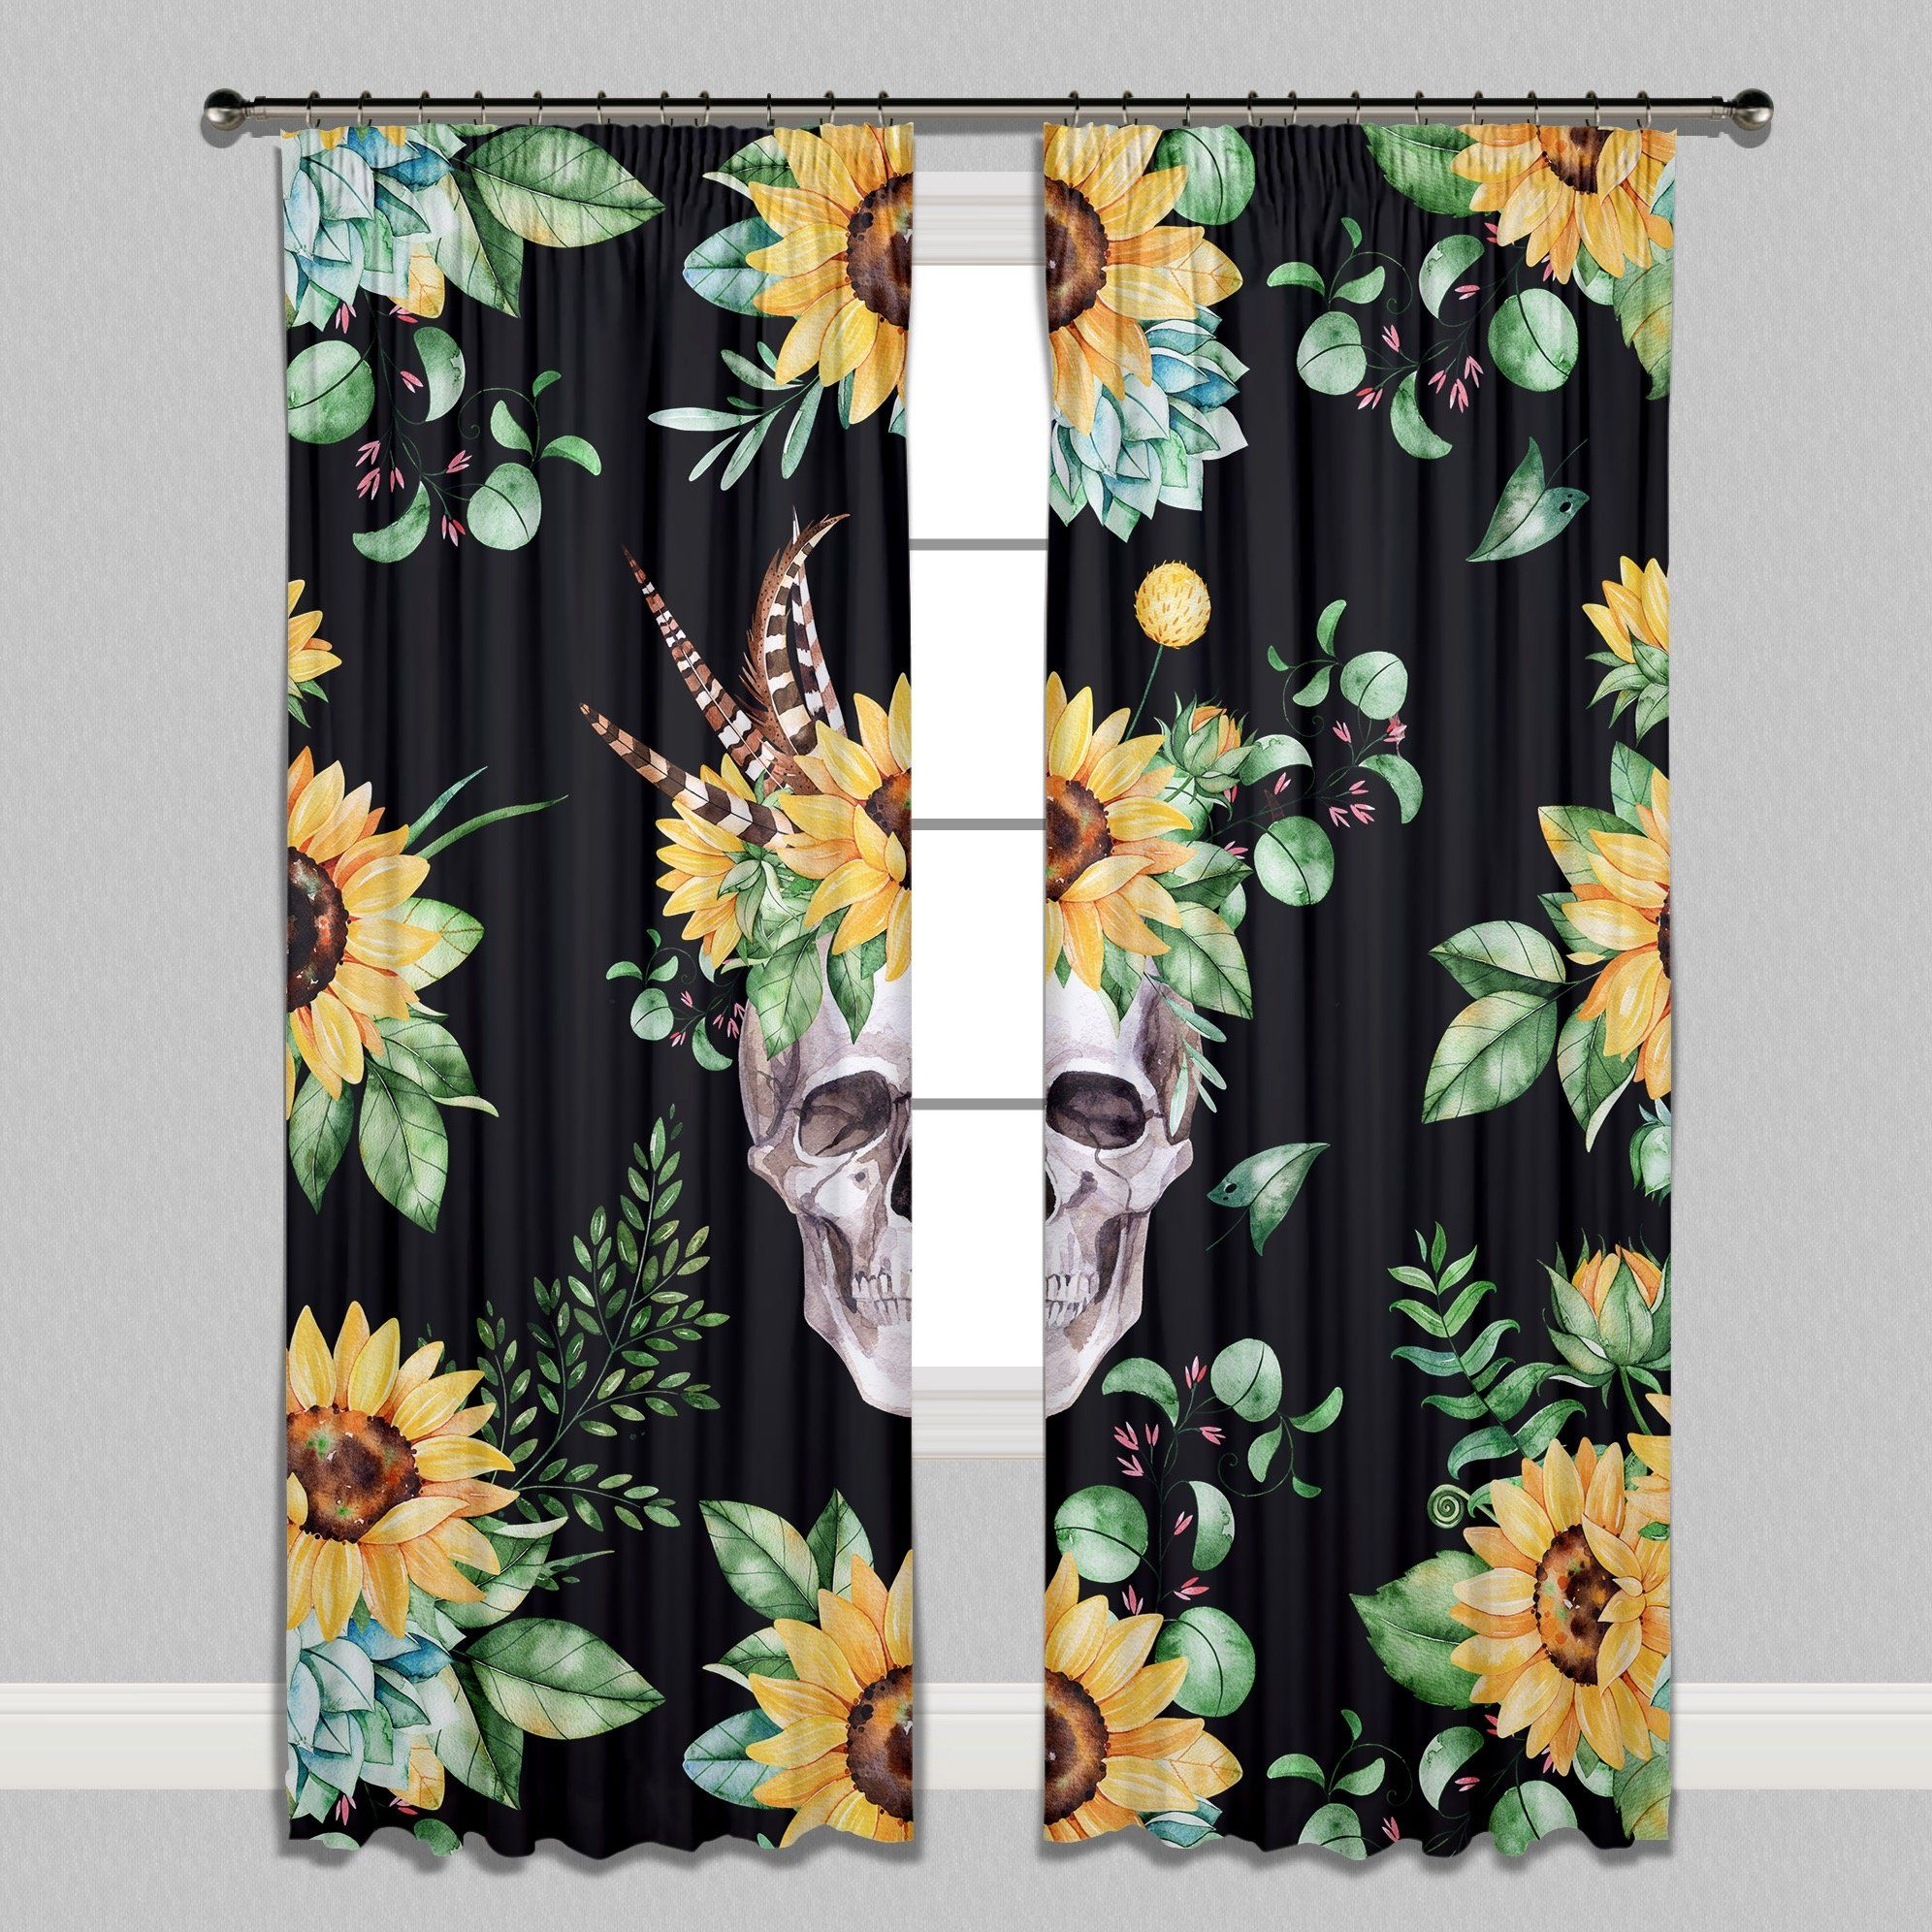 Sunflower And Human Skull On Black Curtains Sunflower Room Black Curtains Sunflower Curtains #sunflower #curtains #for #living #room